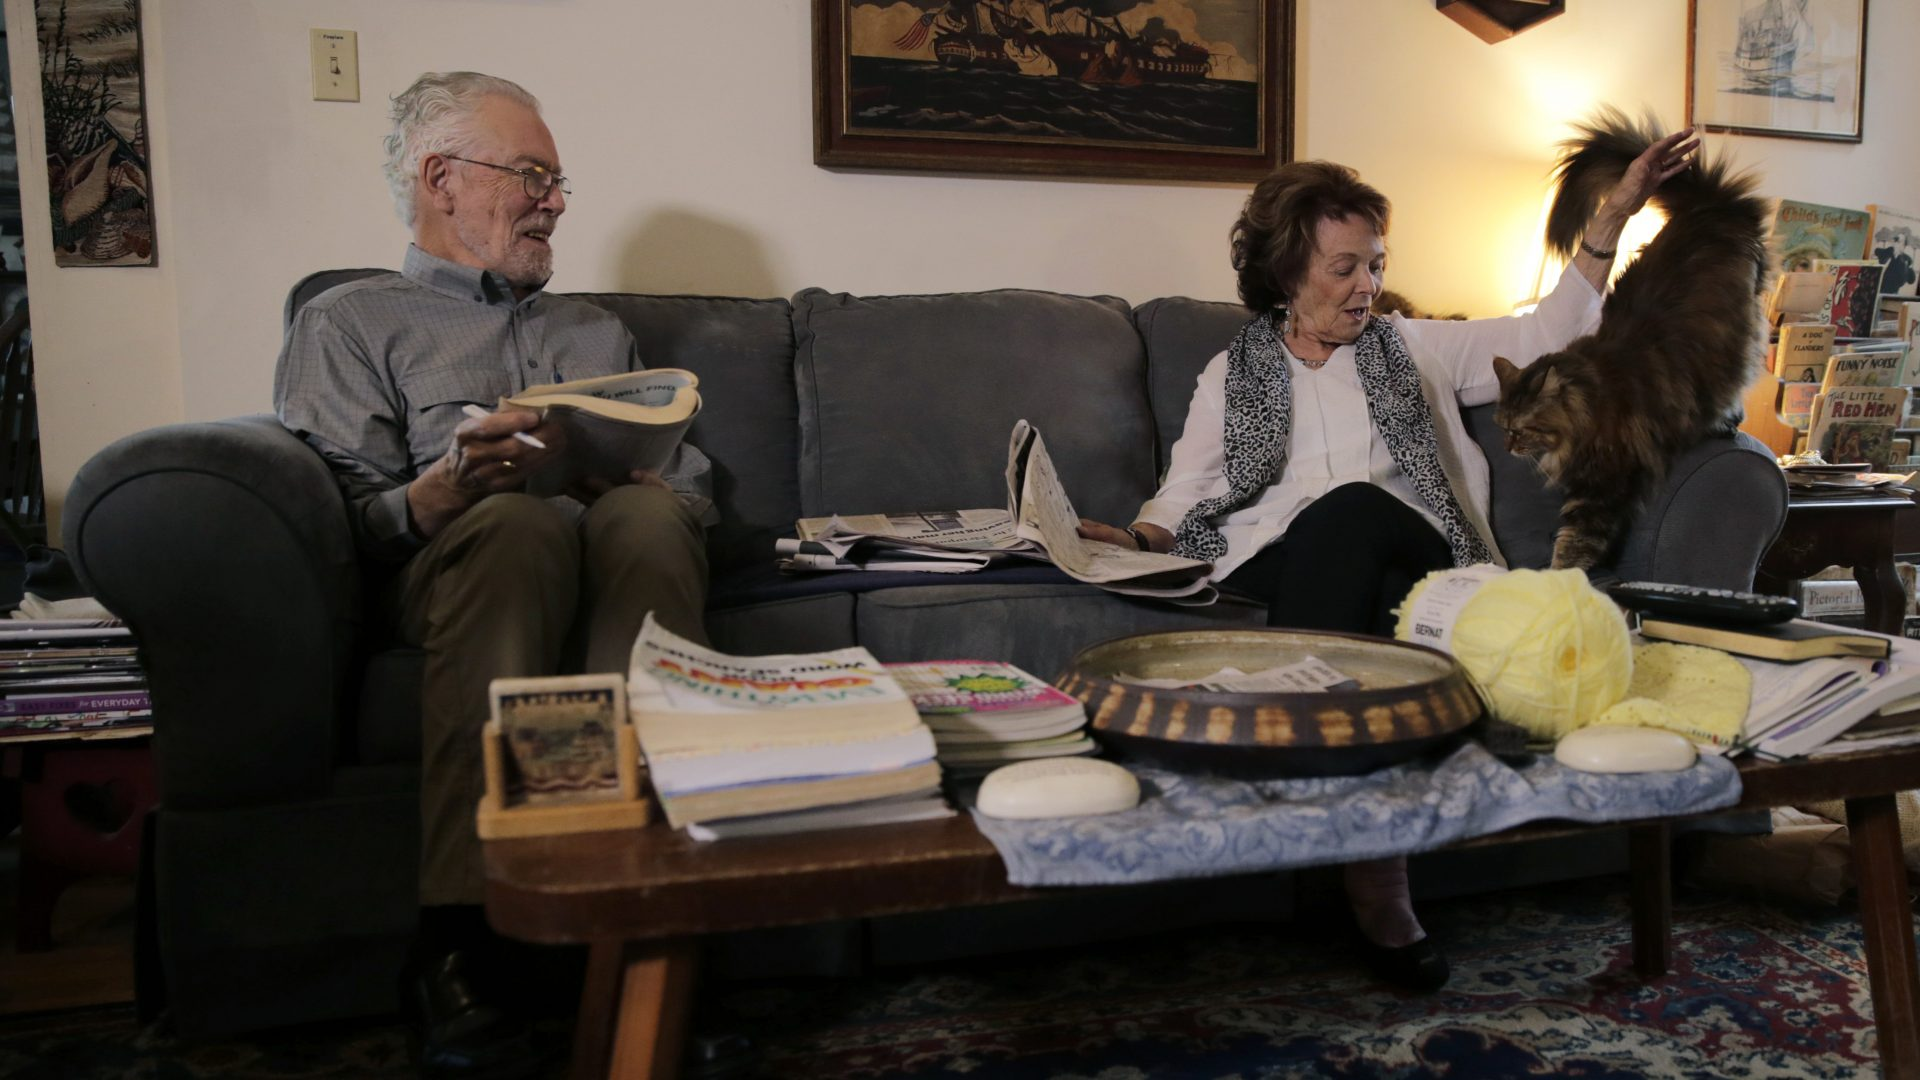 n this Nov. 22, 2019, photo, Charles Flagg, who is stricken with Alzheimer's disease, works on a word puzzle while sitting with his wife Cynthia, right, at their home in Jamestown, R.I.